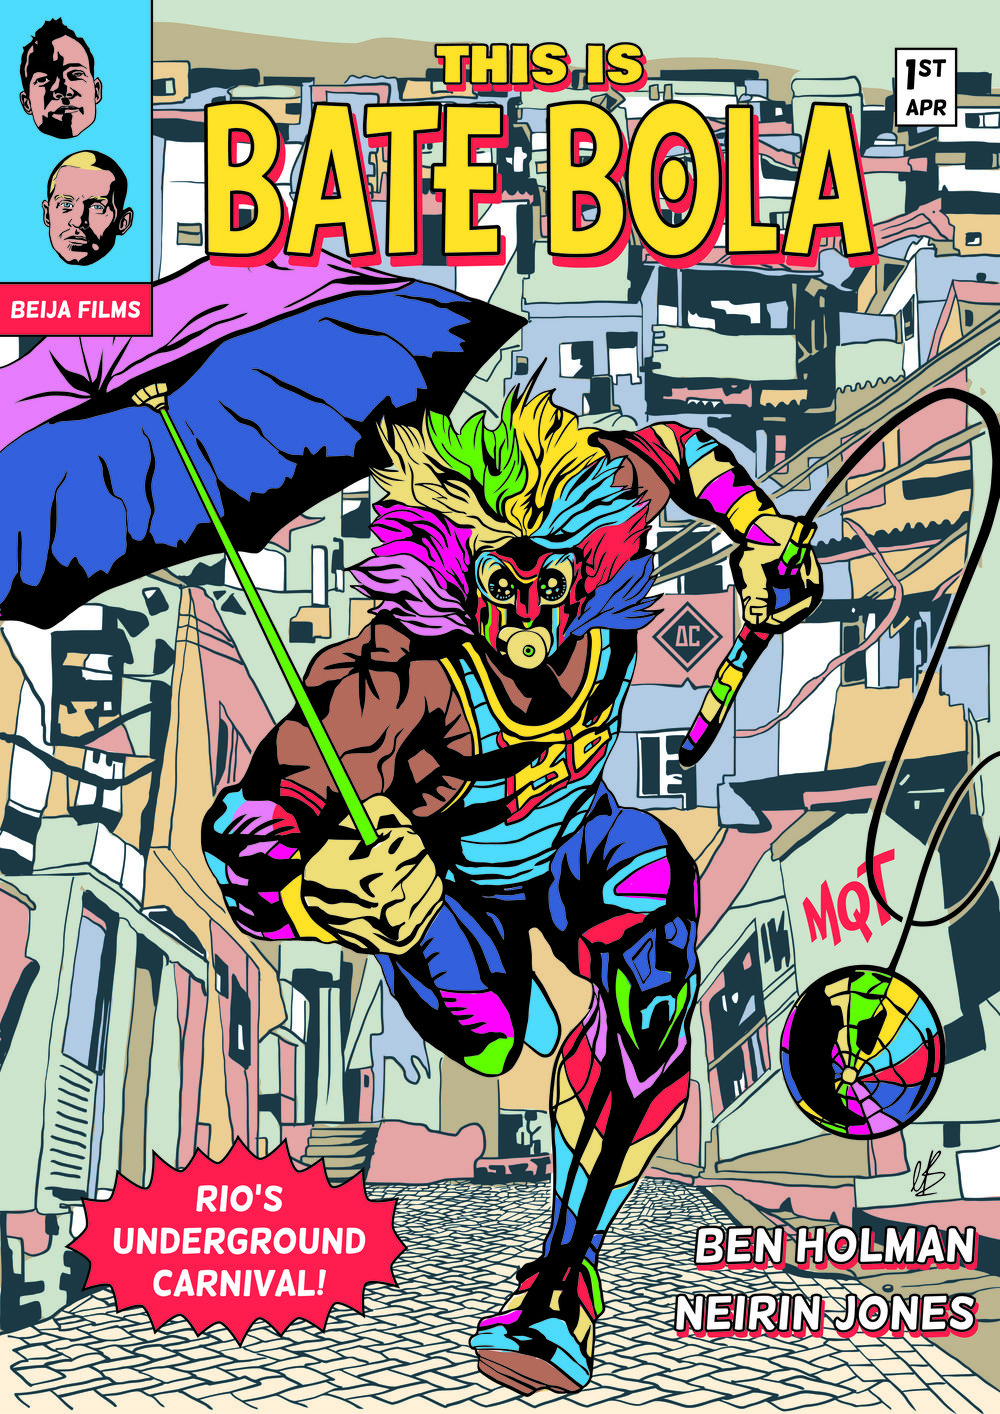 POSTER - This Is Bate Bola.jpg